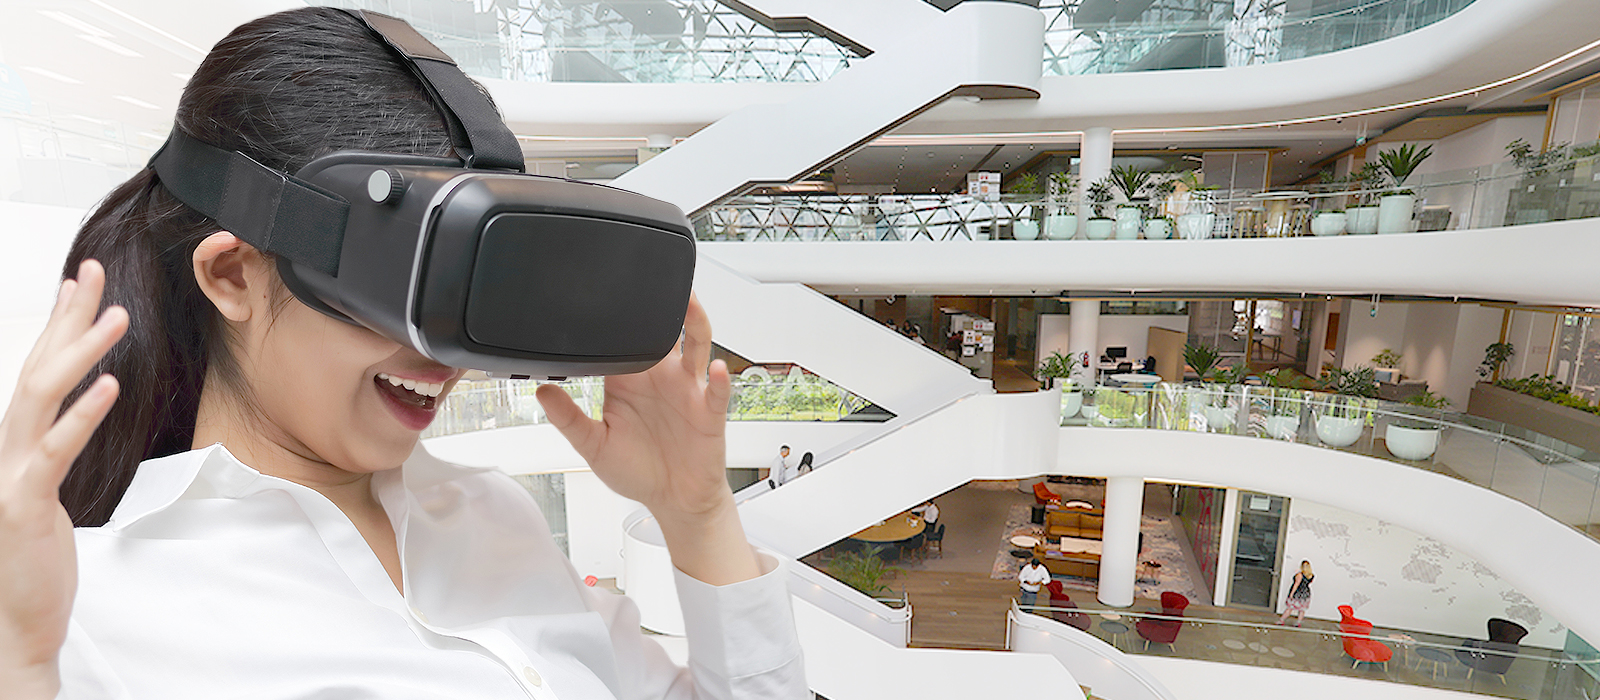 Using VR to create an immersive experience for candidates, especially early talent